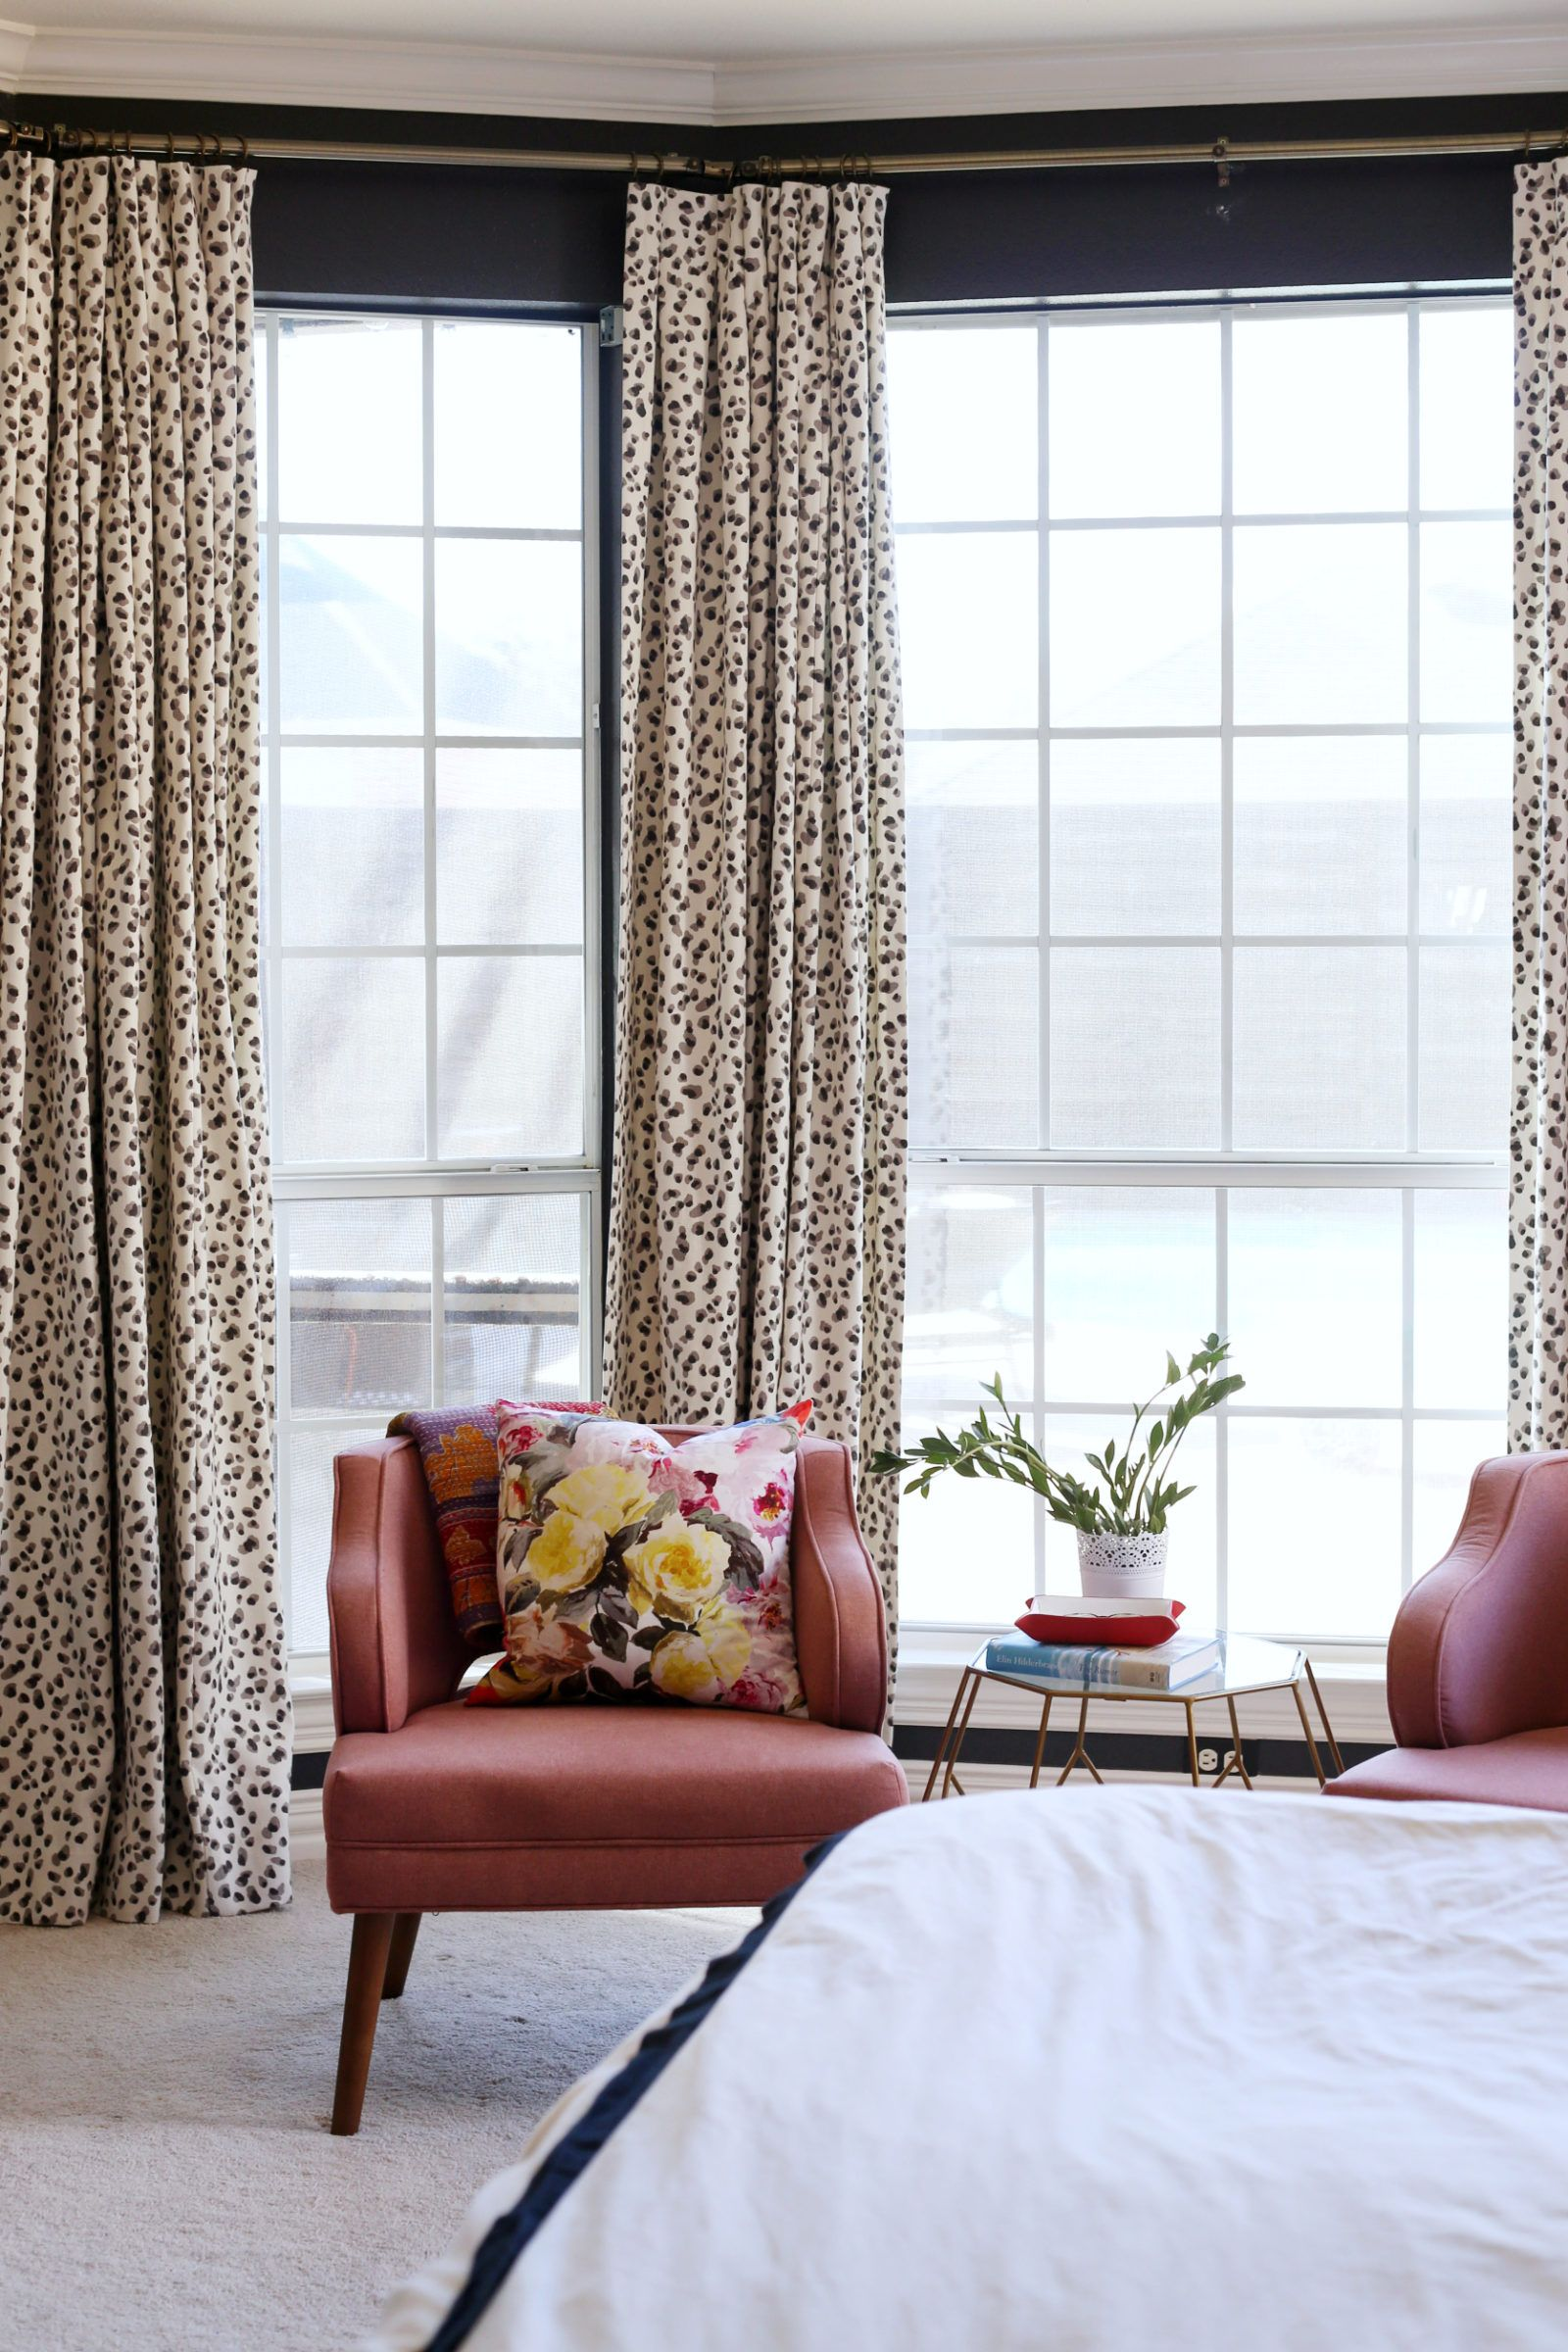 Master bedroom inspiration  Master bedroom inspiration complete with colorful textiles and mid